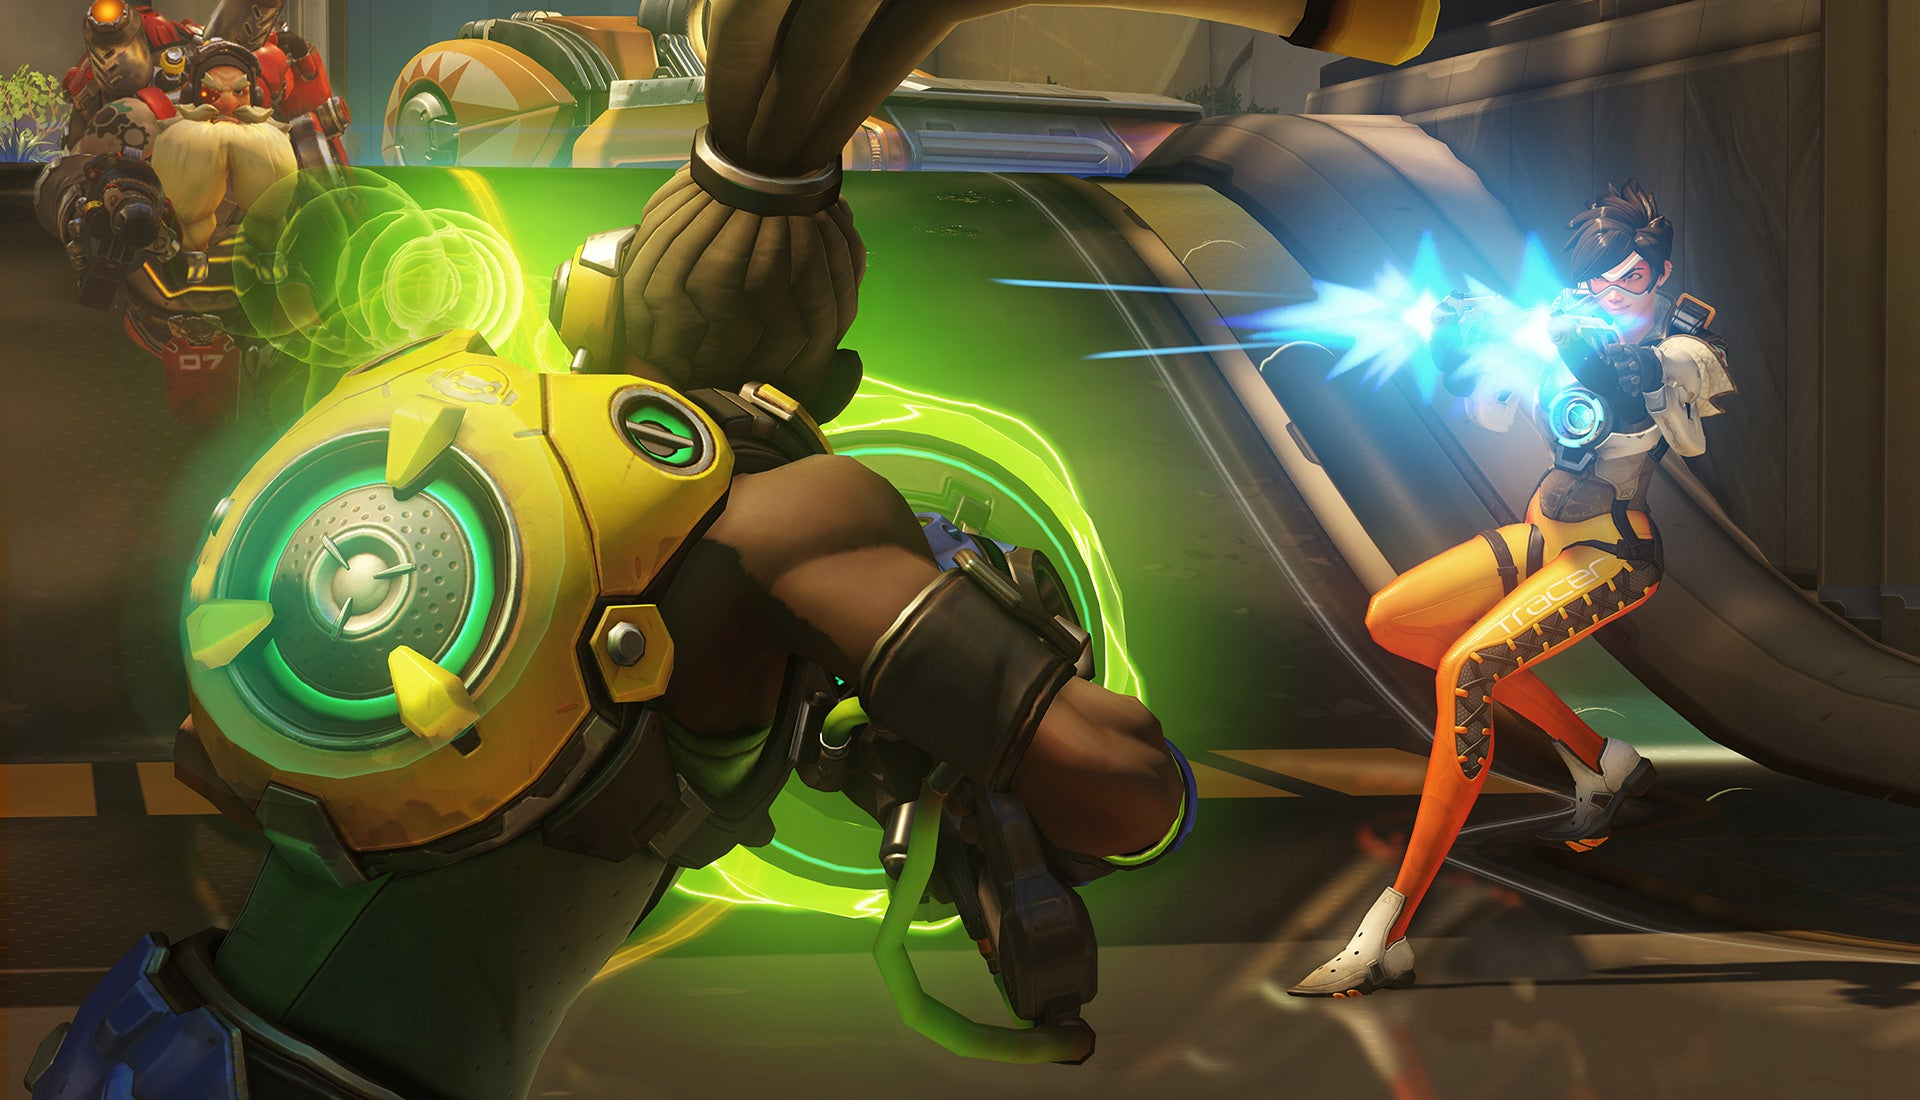 Overwatch's New Progression System Is A Big Step In The Right Direction